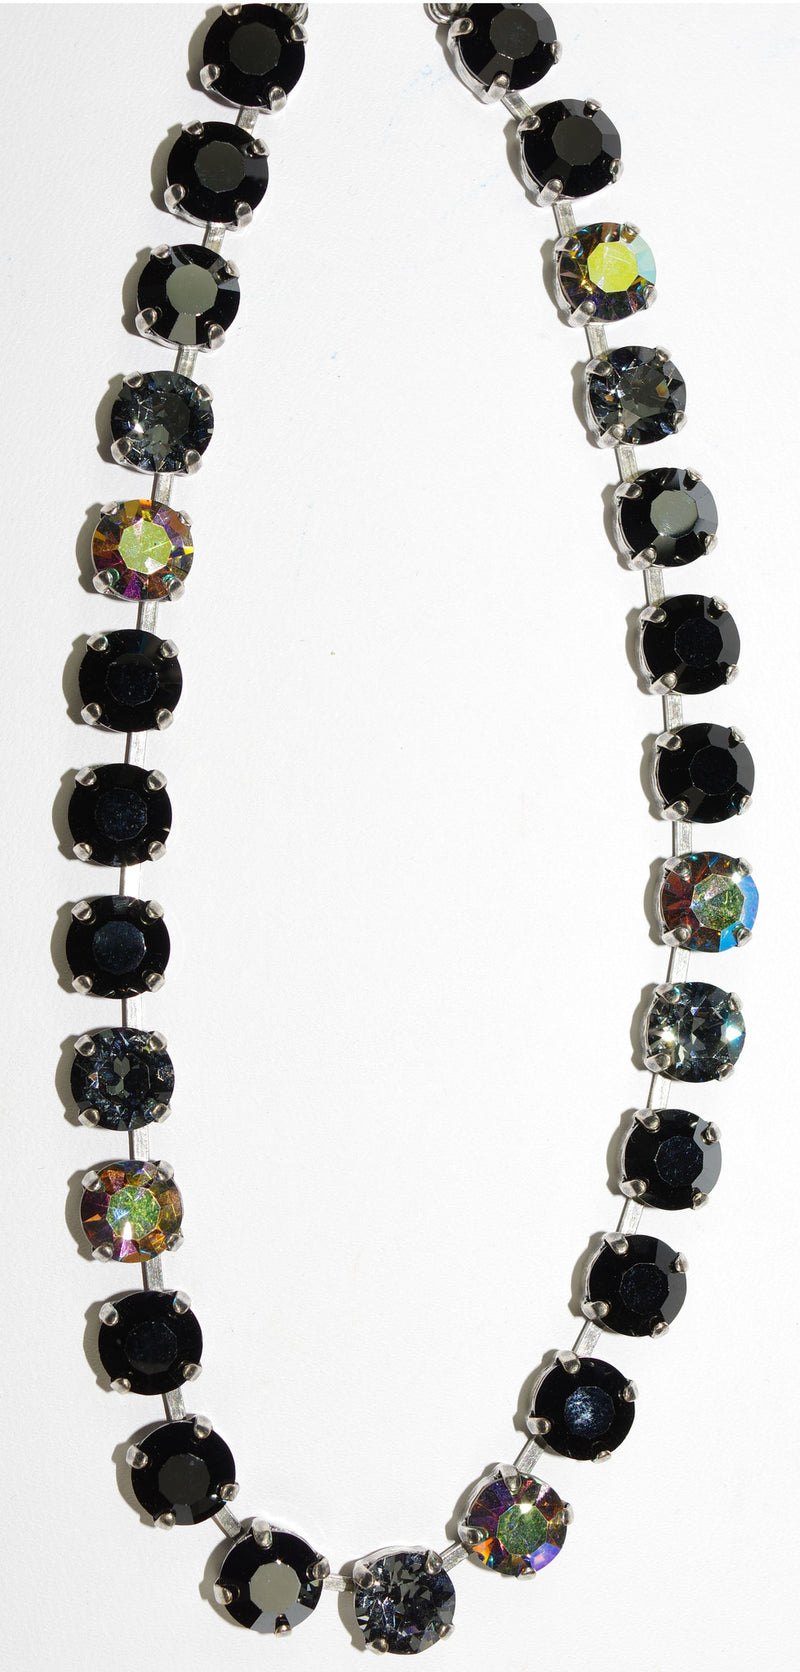 "MARIANA NECKLACE BETTE GREASED LIGHTNING: black, a/b, grey 1/4"" stones in silver setting, 17"" adjustable chain"